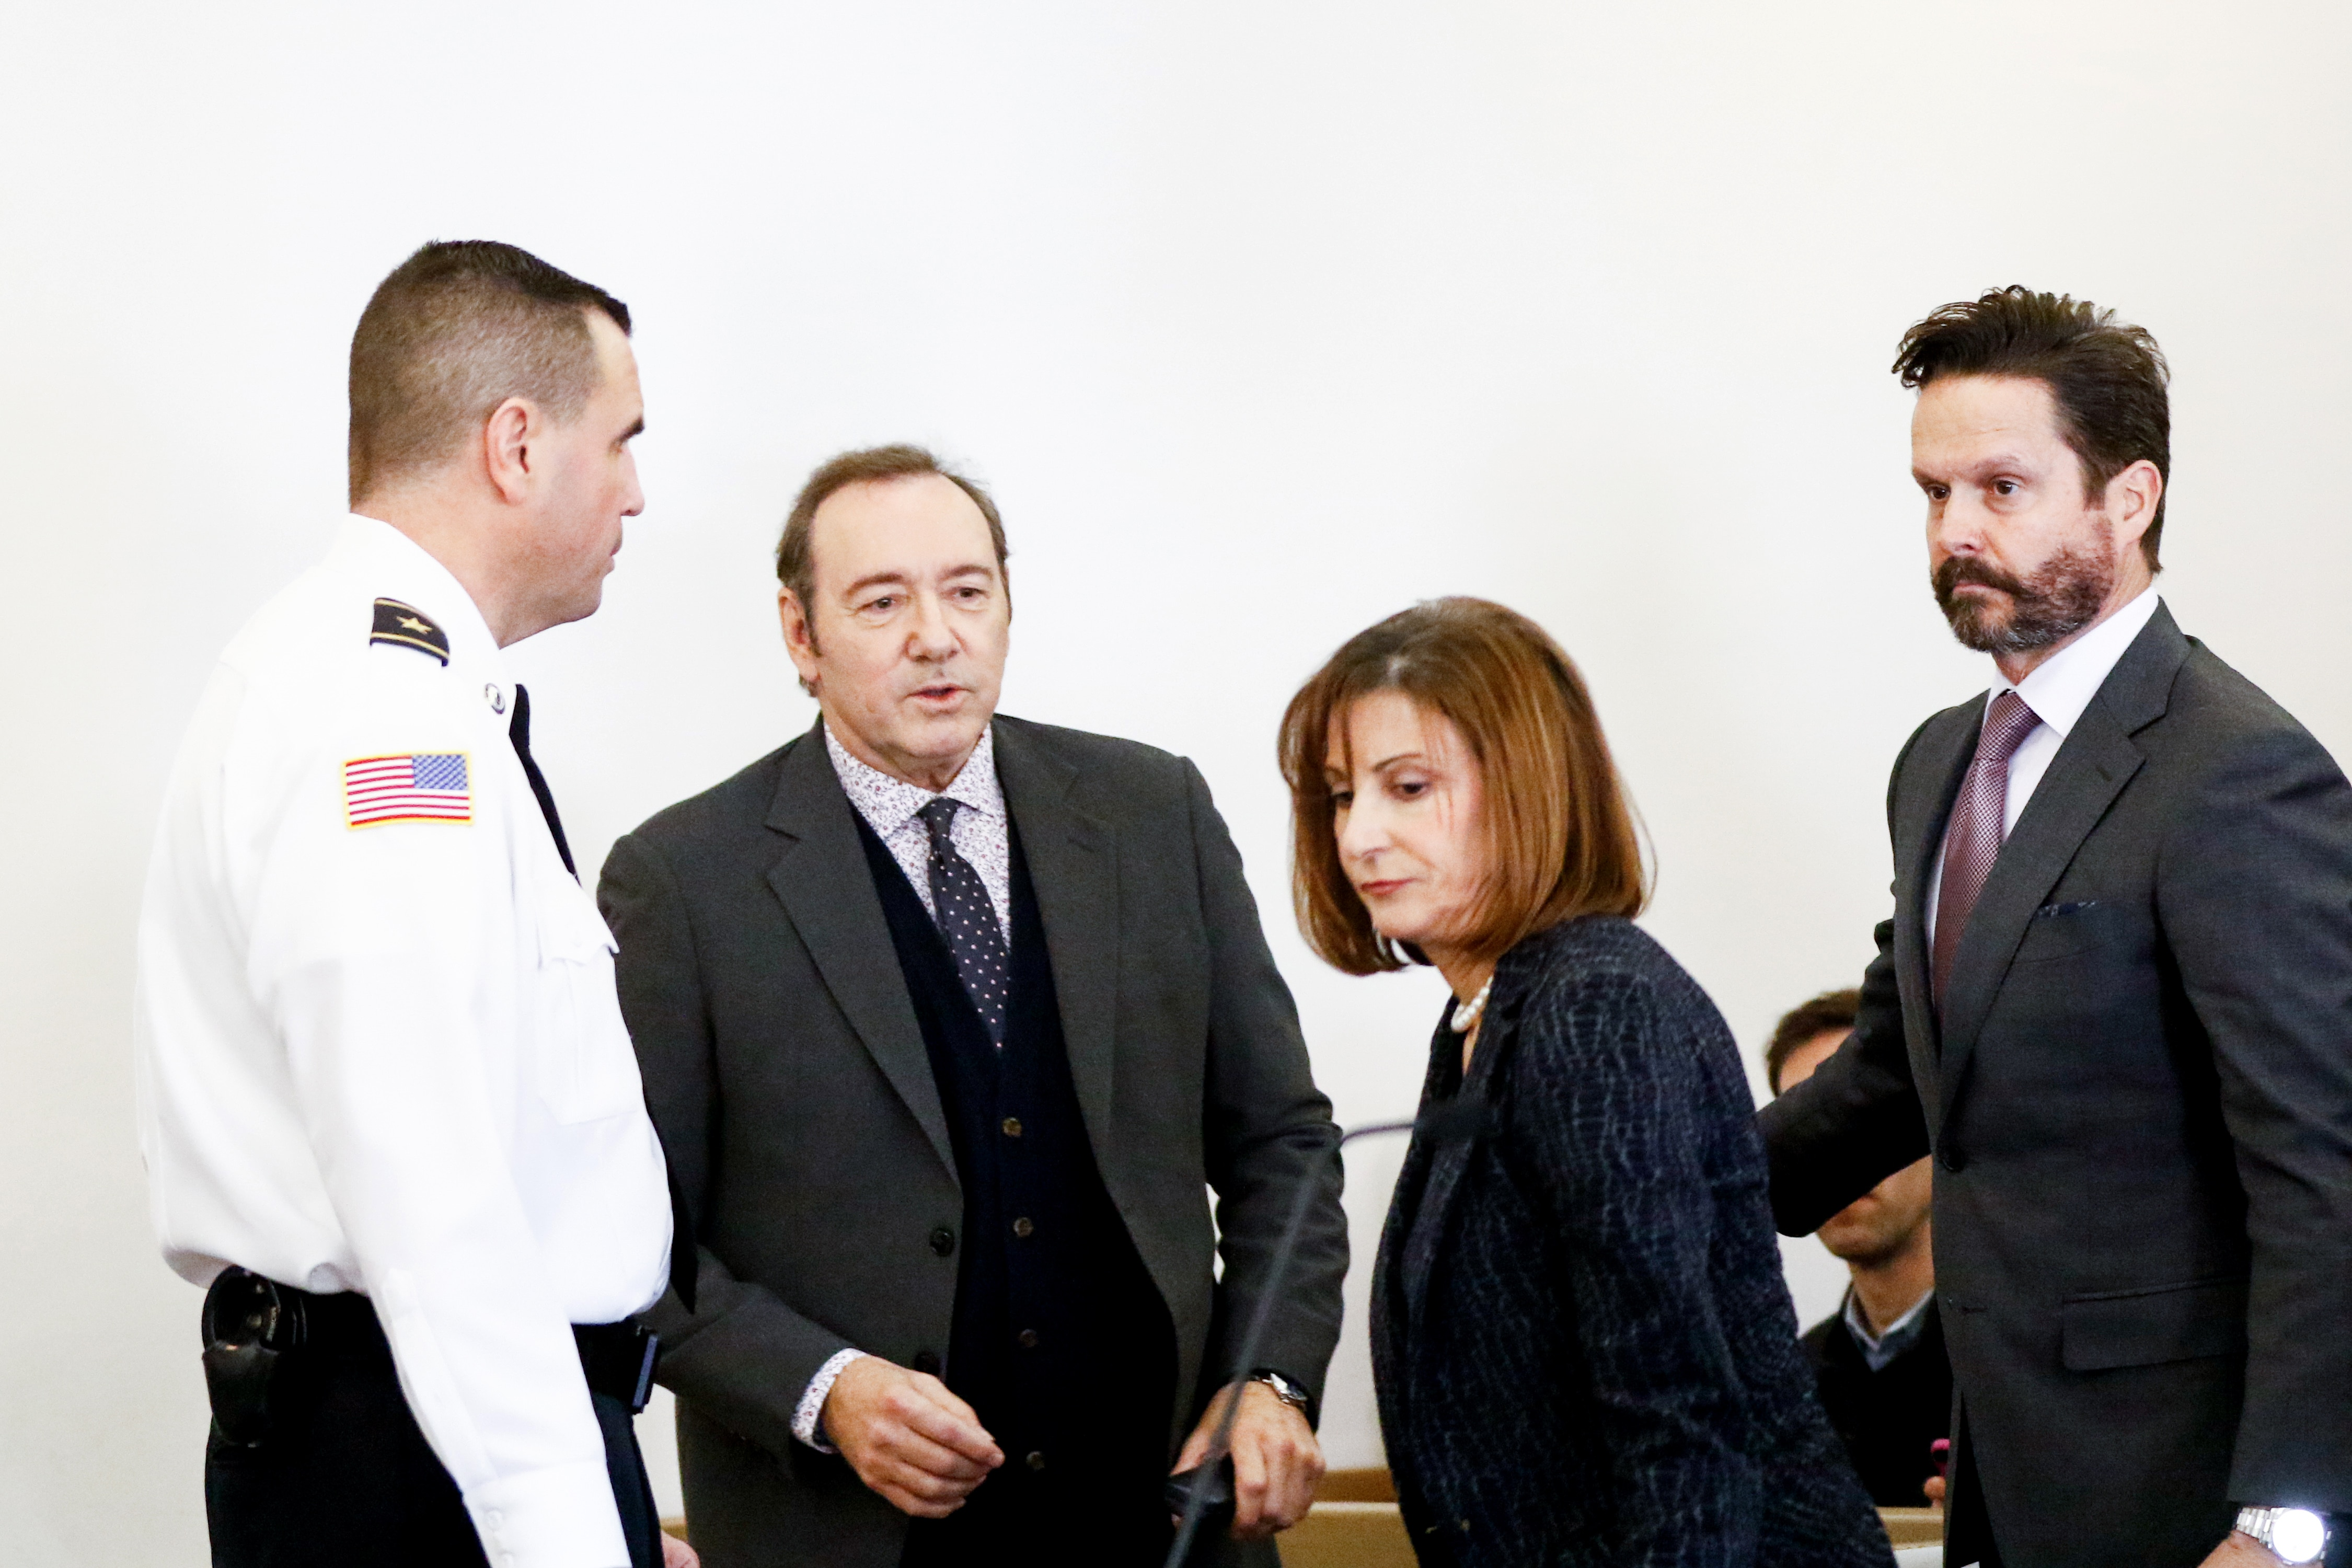 Kevin Spacey is escorted with his lawyers Juliane Baliro and Alan Jackson during his earlier arraignment for sexual assault charges at Nantucket District Court